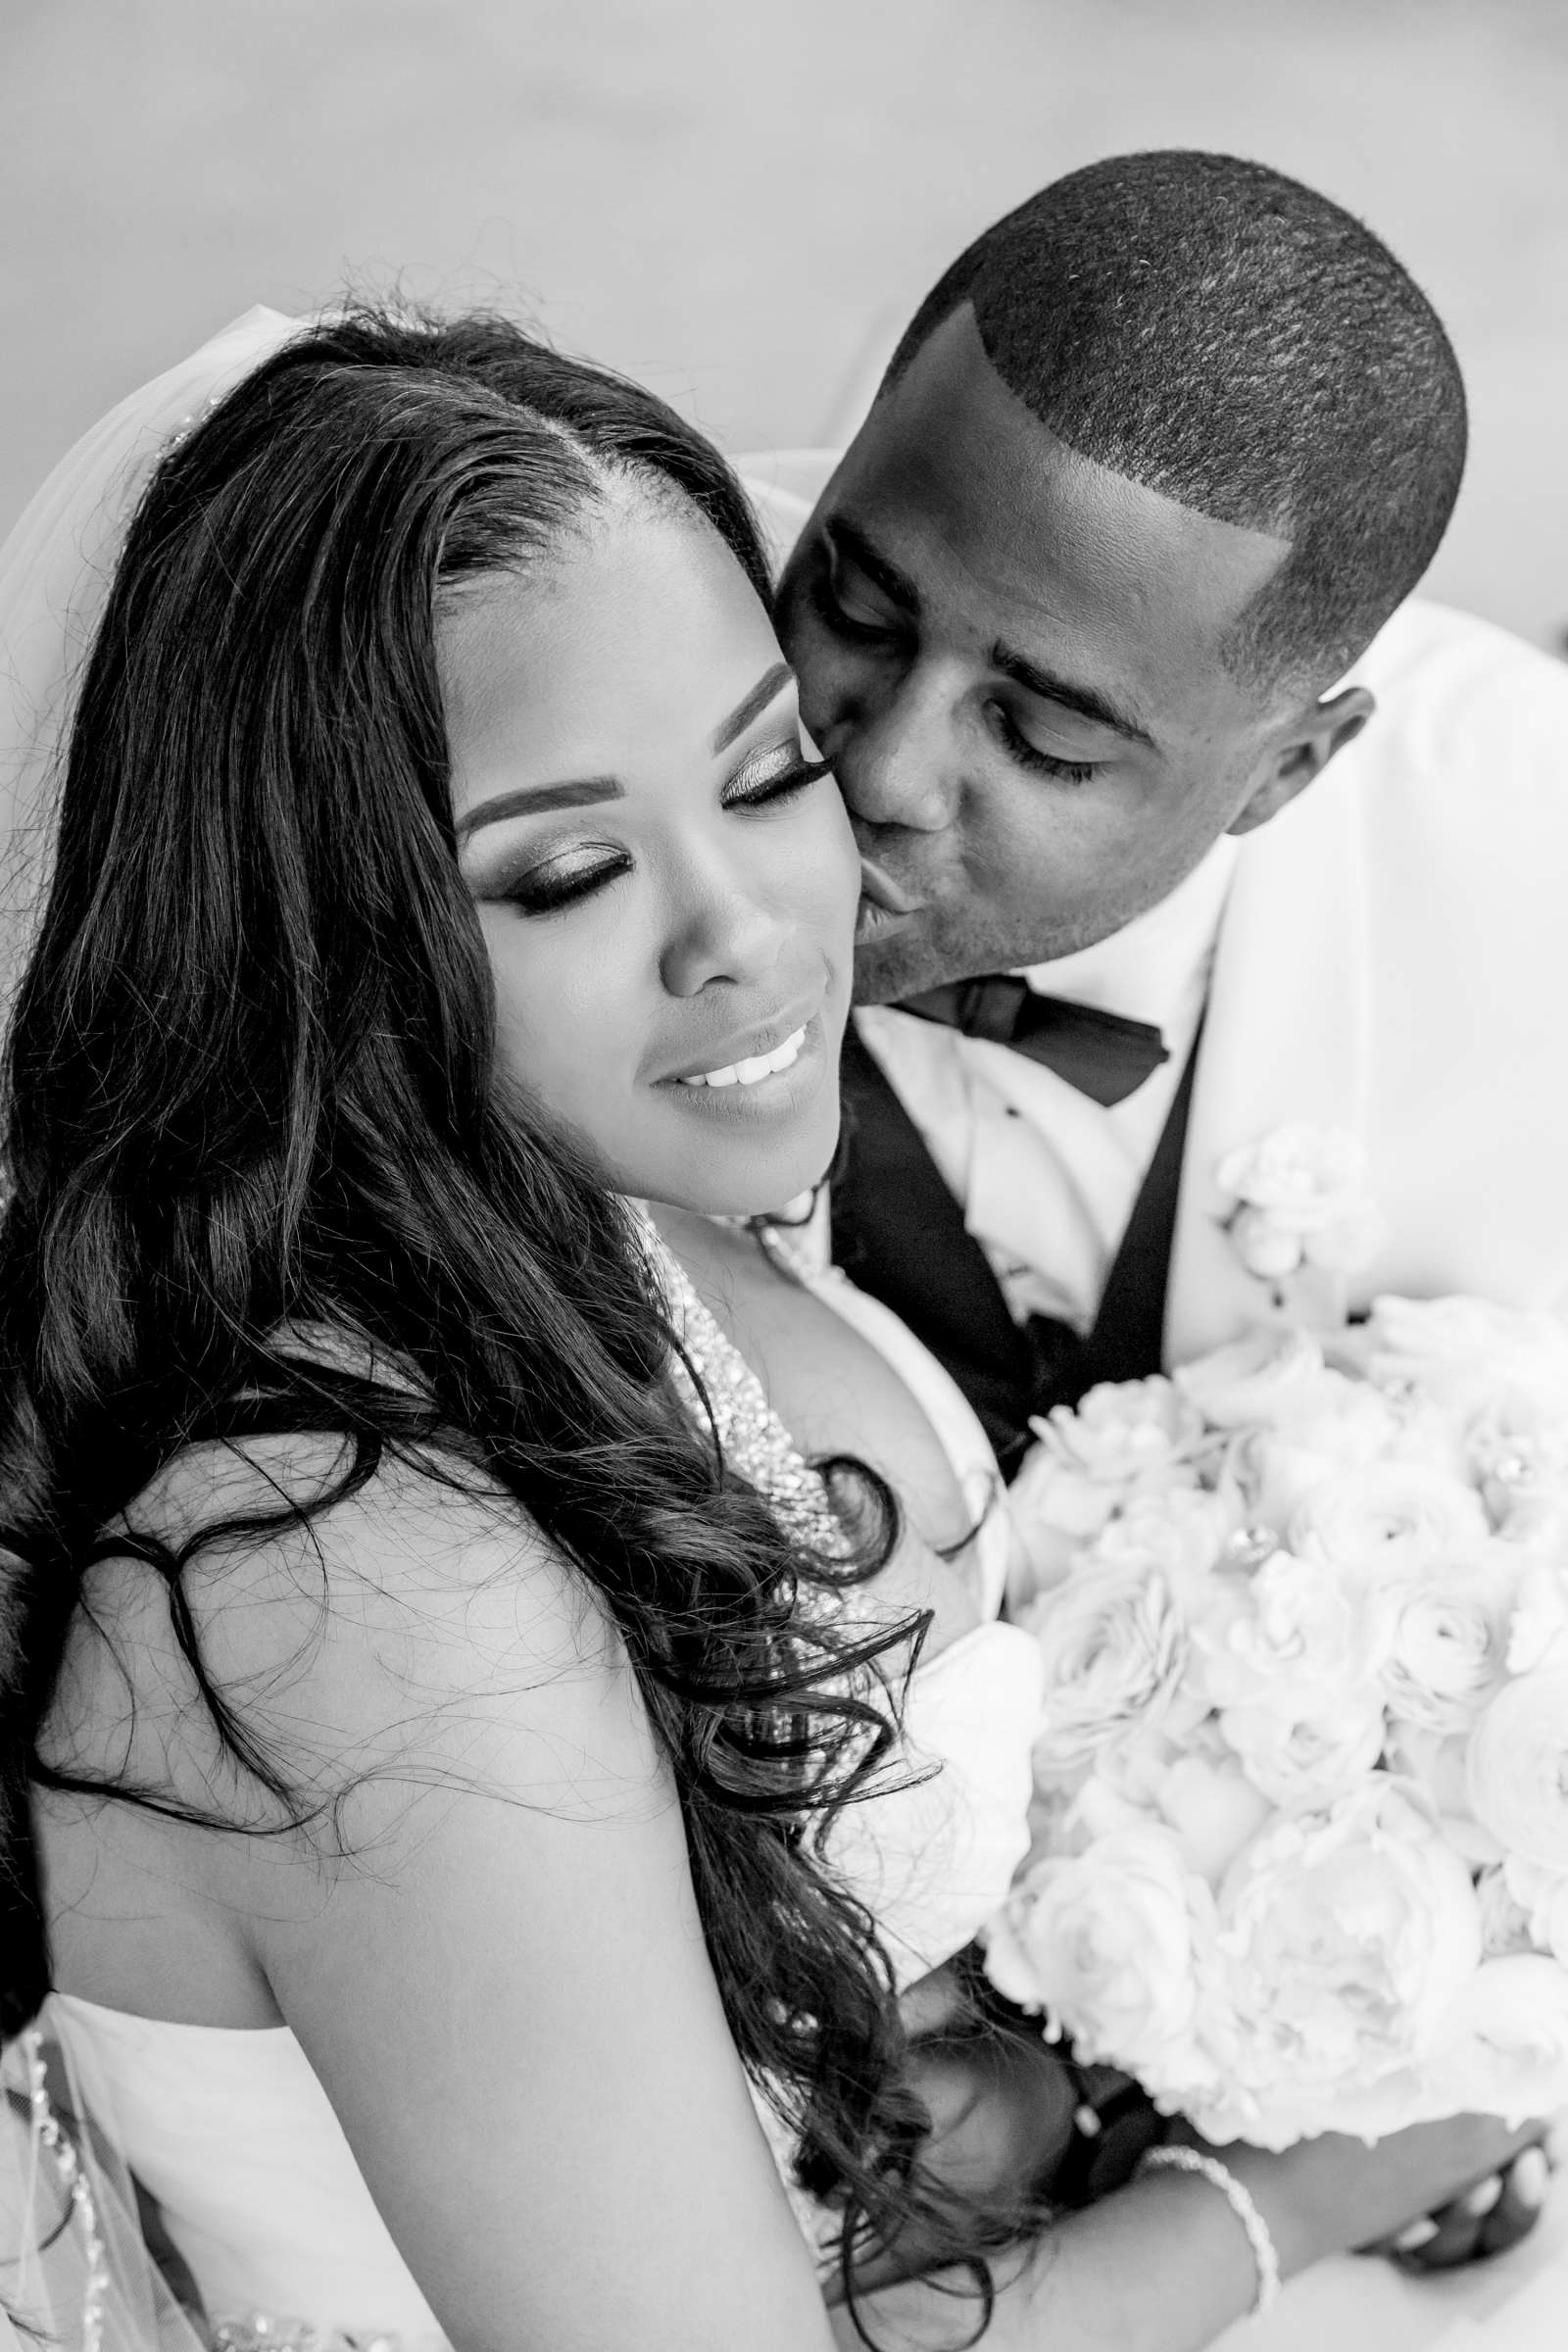 Coronado Community Center Wedding coordinated by First Comes Love Weddings & Events, Nikia and Charles Wedding Photo #63 by True Photography